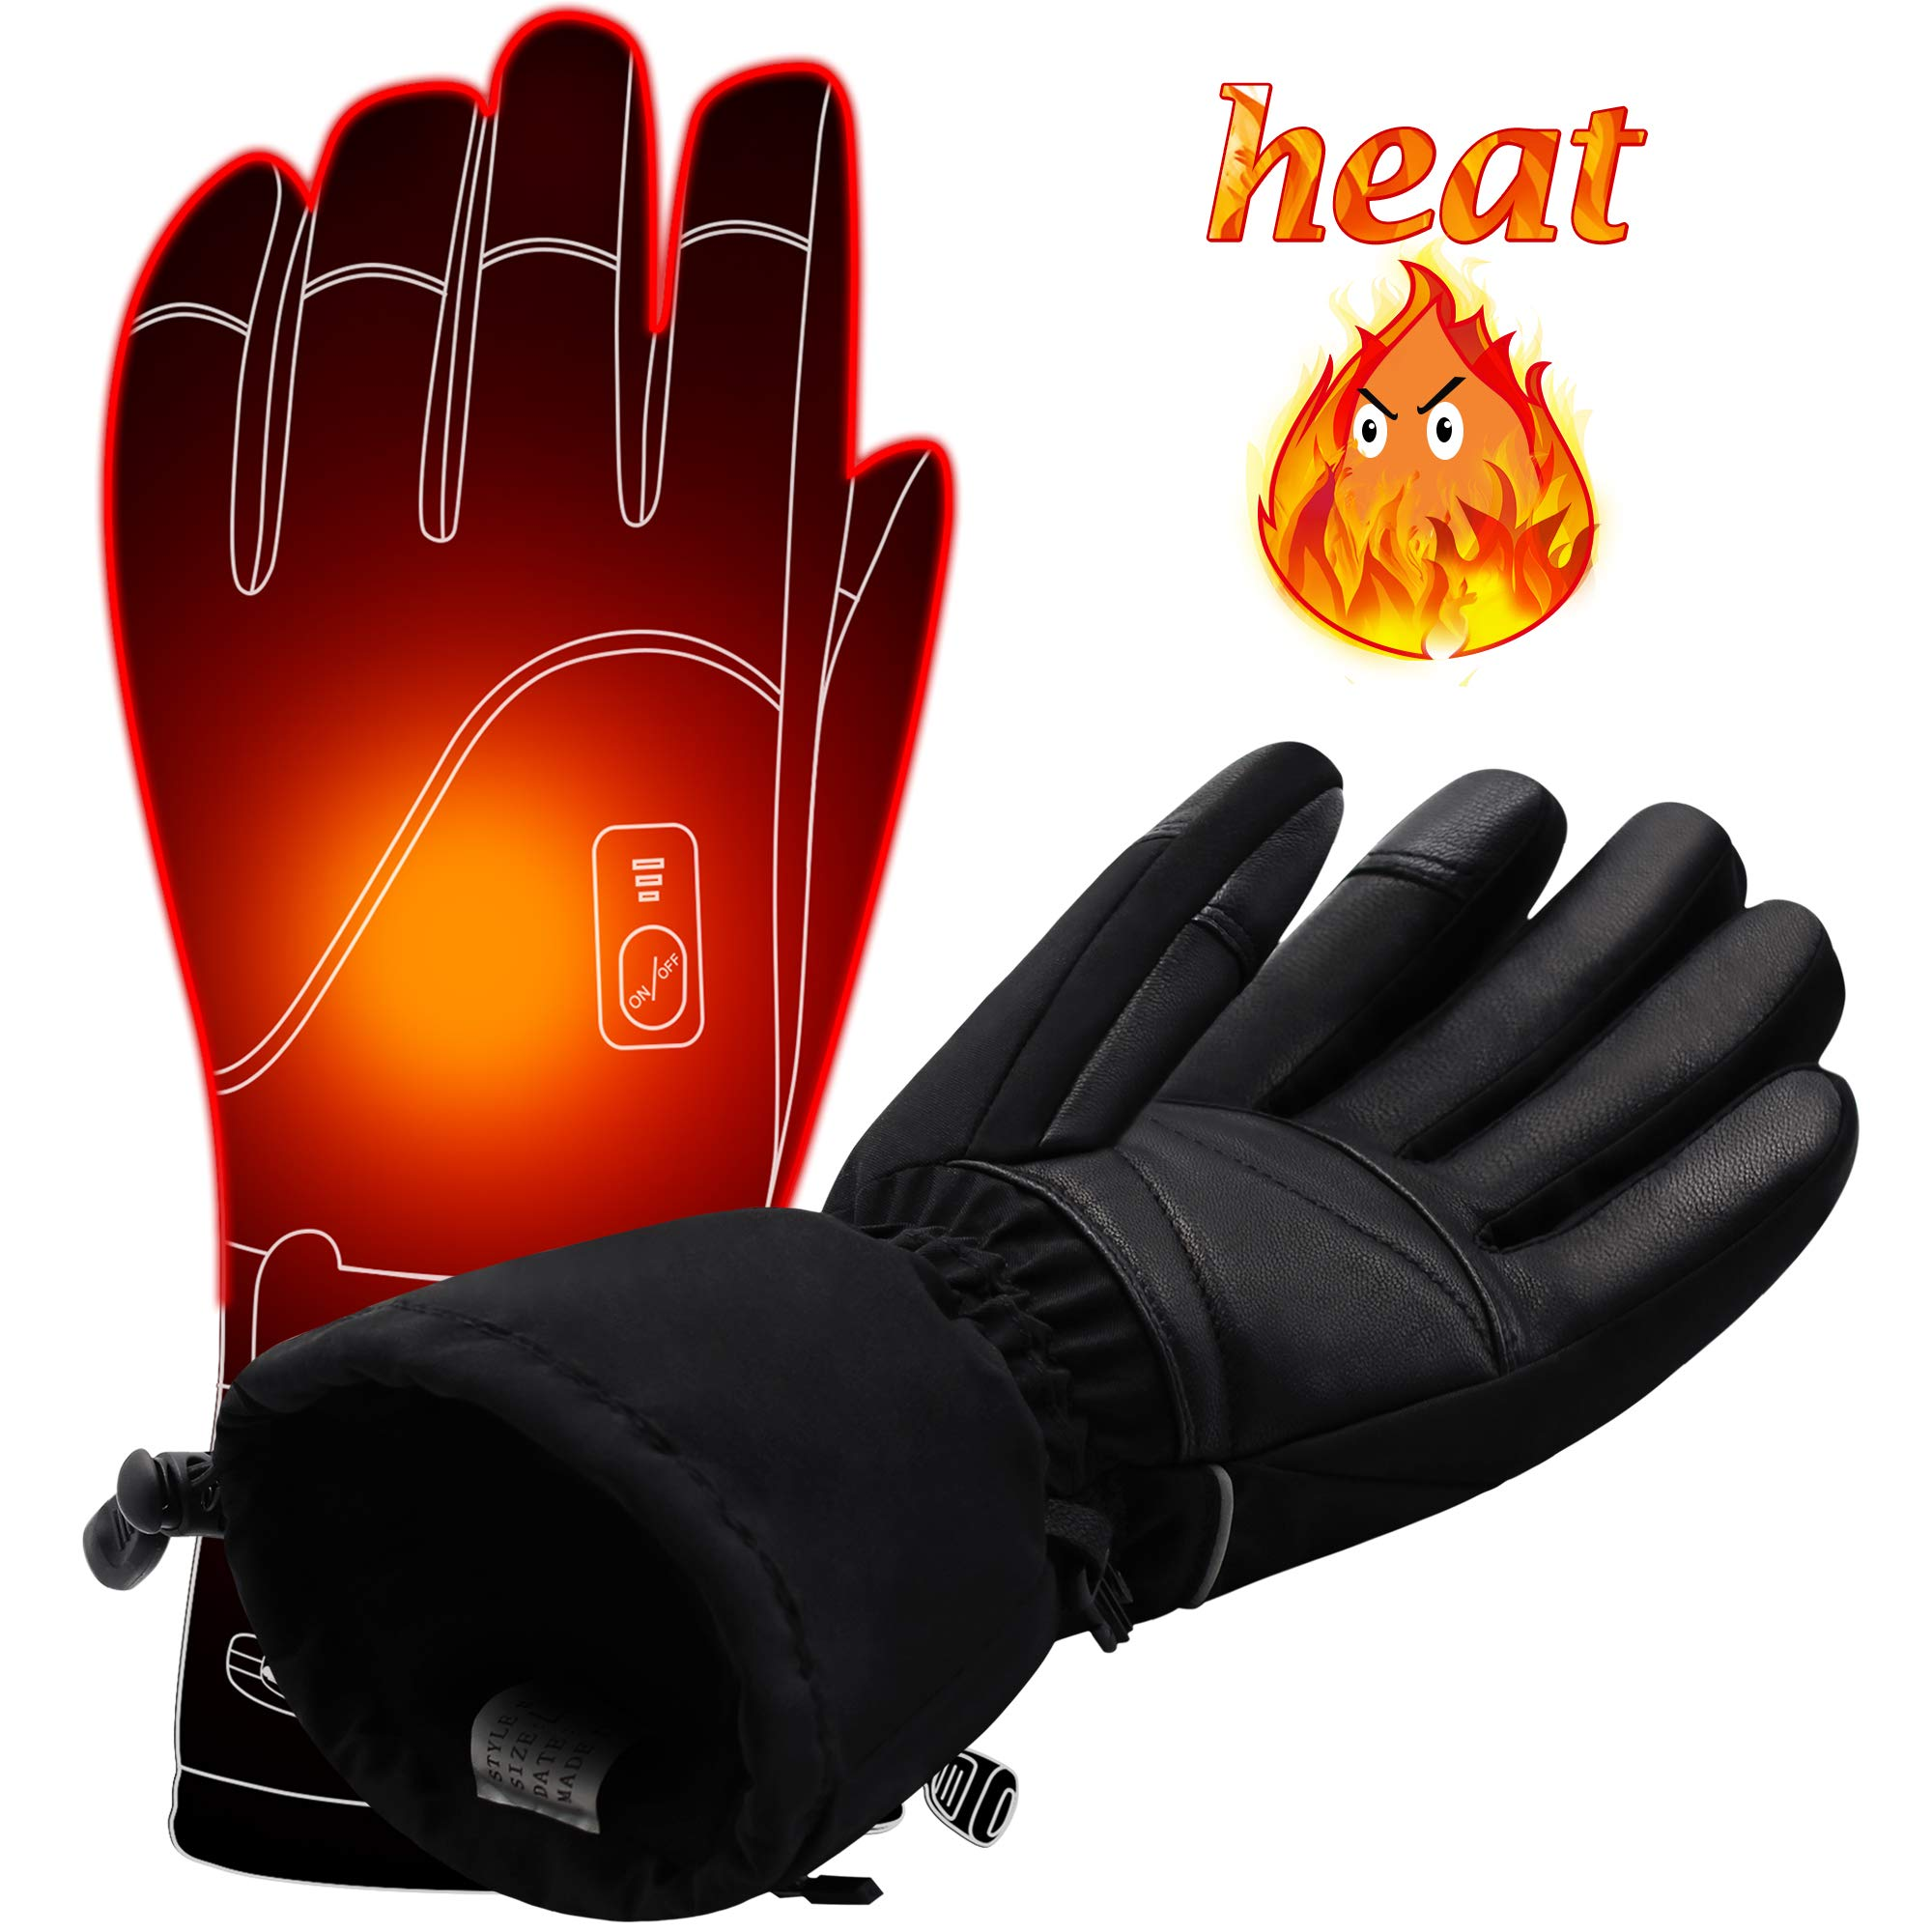 Autocastle Men Women Electric Heated GlovesTouchscreen Heating Gloves with 2200mAh Li-Po Battery,Heat Insulated Thermal Gloves for Climbing Hiking Skiing,3 Heat,Hand Warmer,Black (XL) by Autocastle